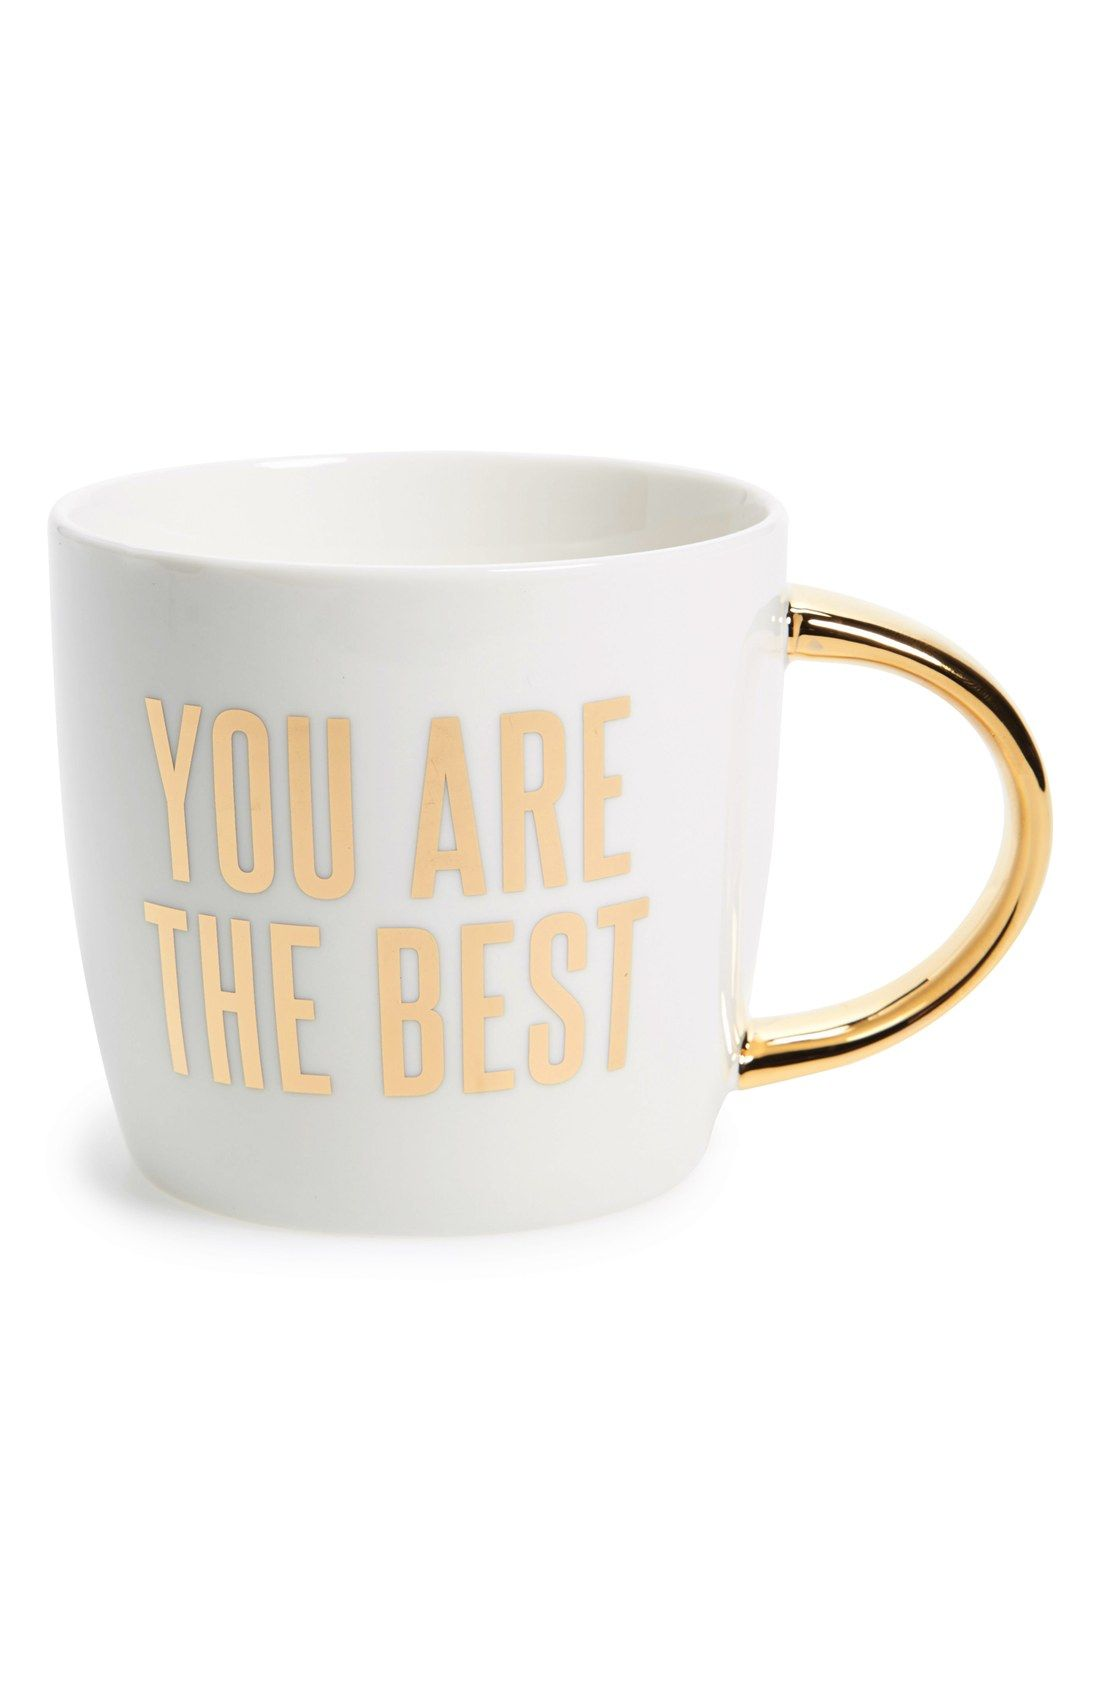 Reminding that special someone, just how special they truly are with this chic ceramic mug.